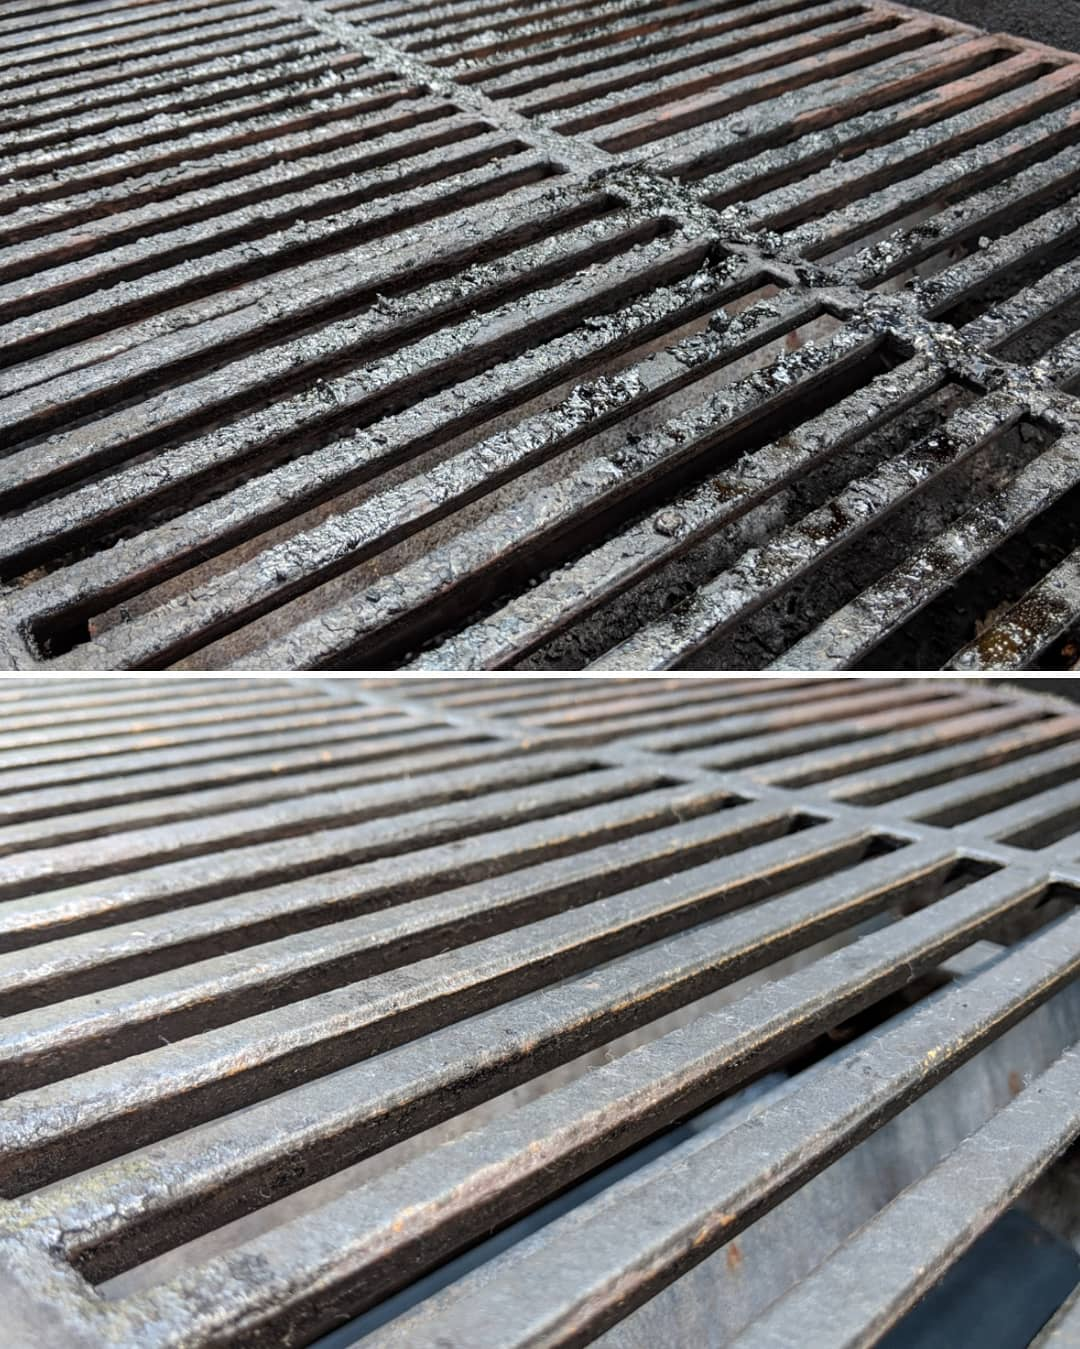 Cleaning Grill Services